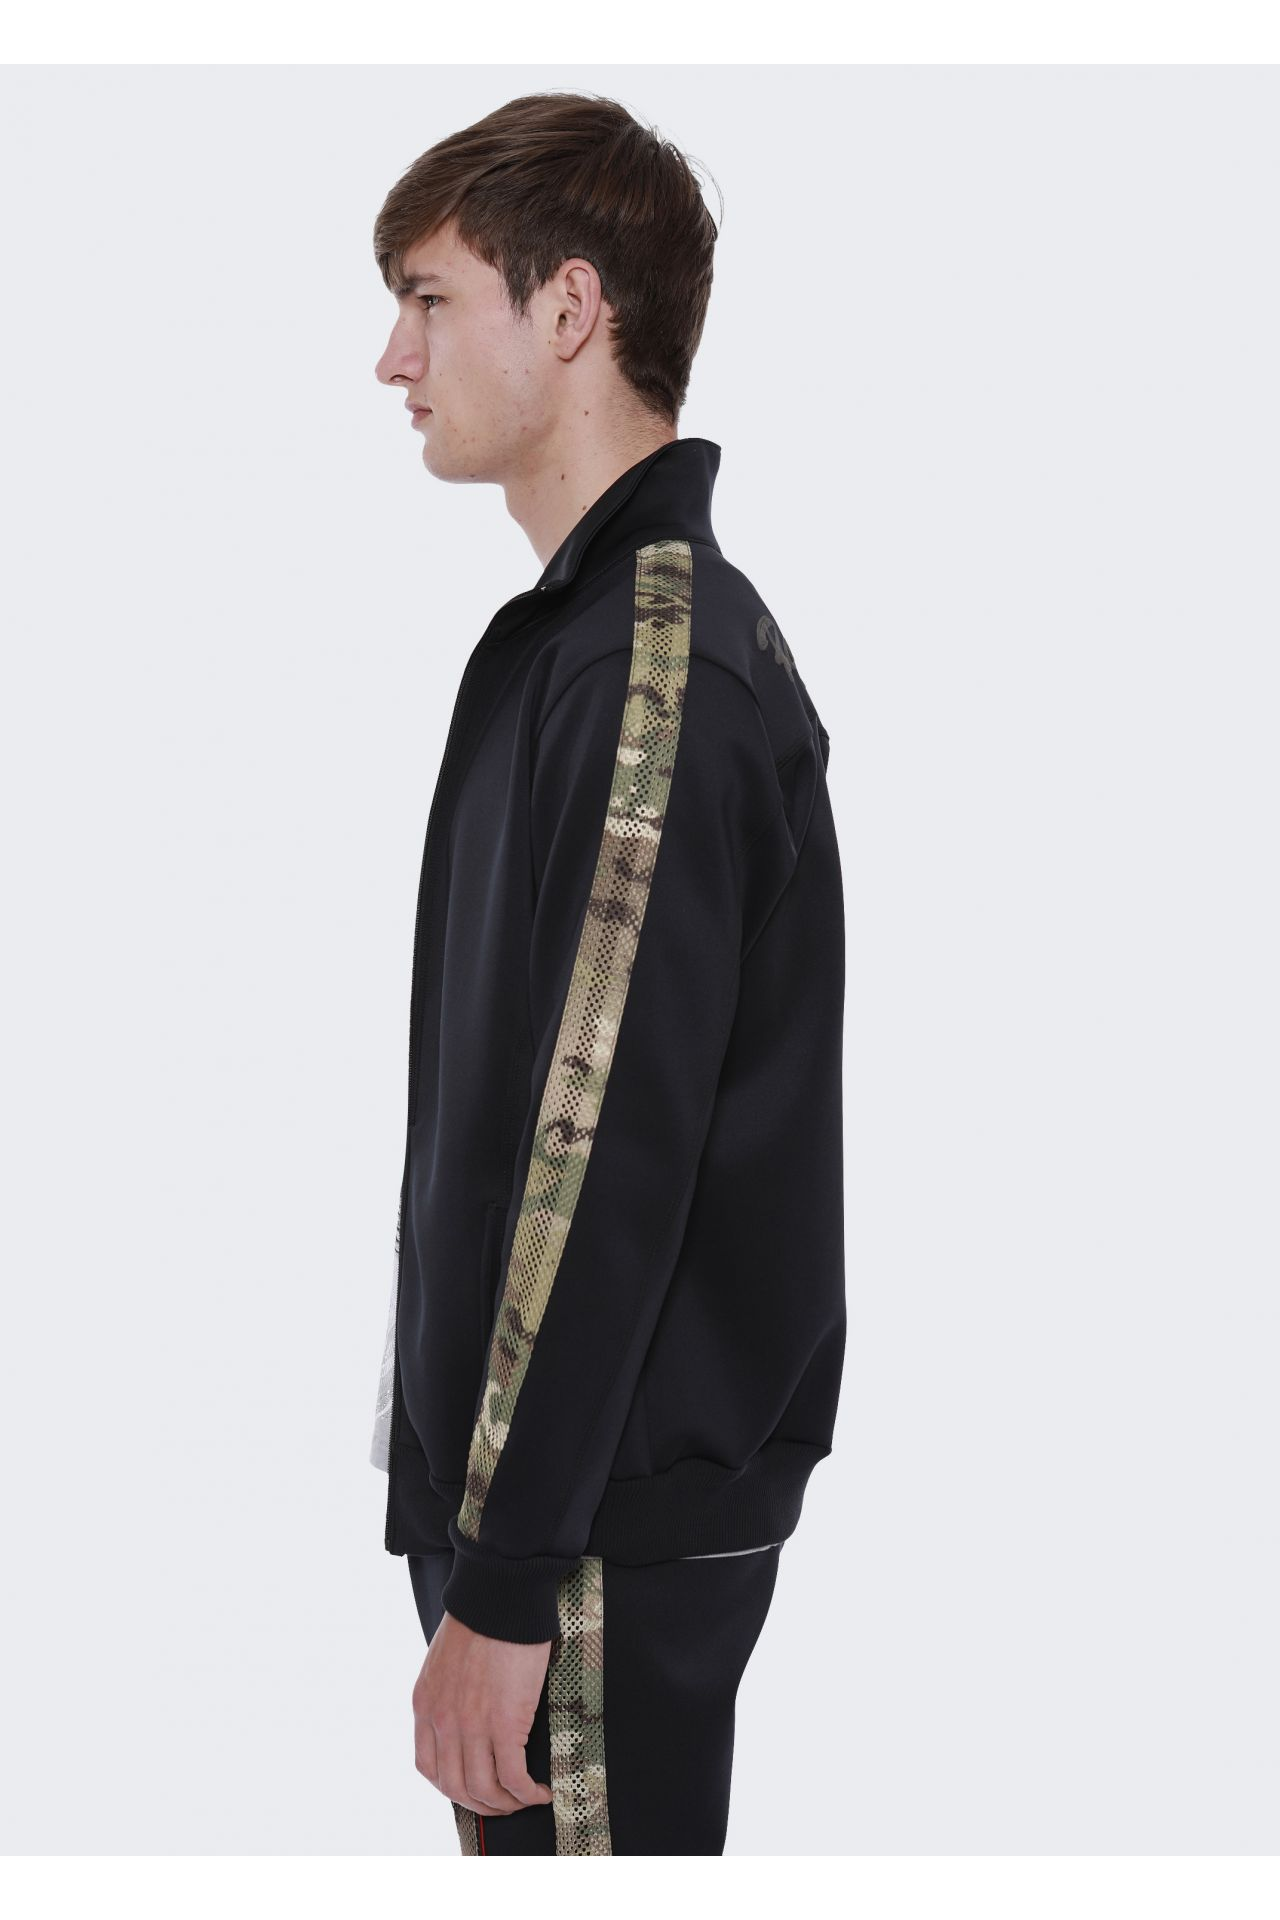 TRACK JACKET PIPING IN BLACK CAMO